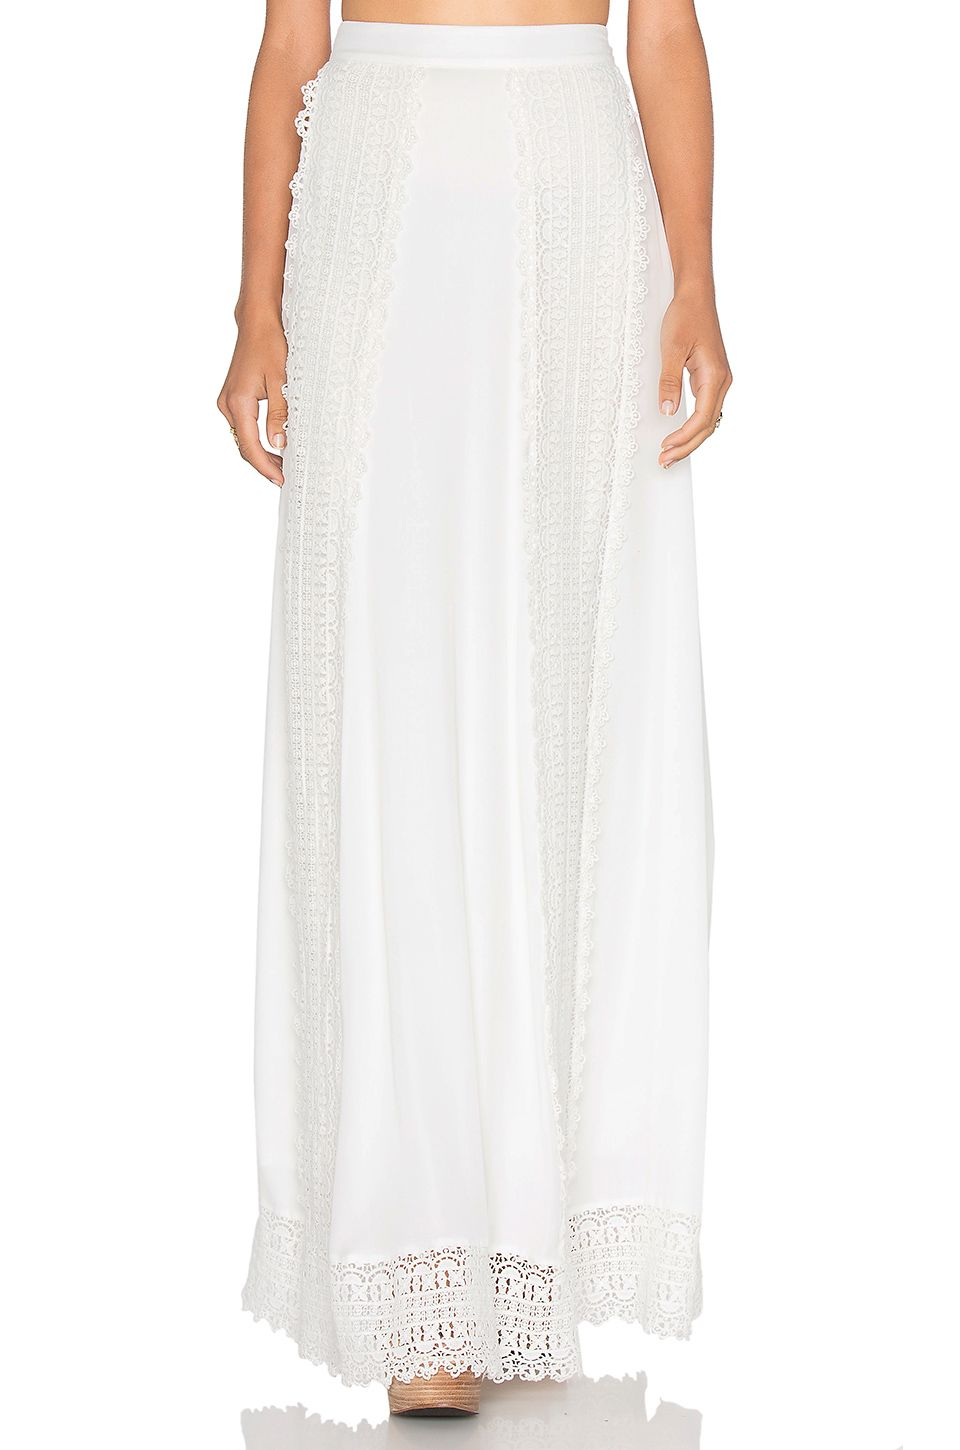 Sante Fe Maxi Skirt in White Majorelle London Clearance New Arrival Shopping Z29BHbuE